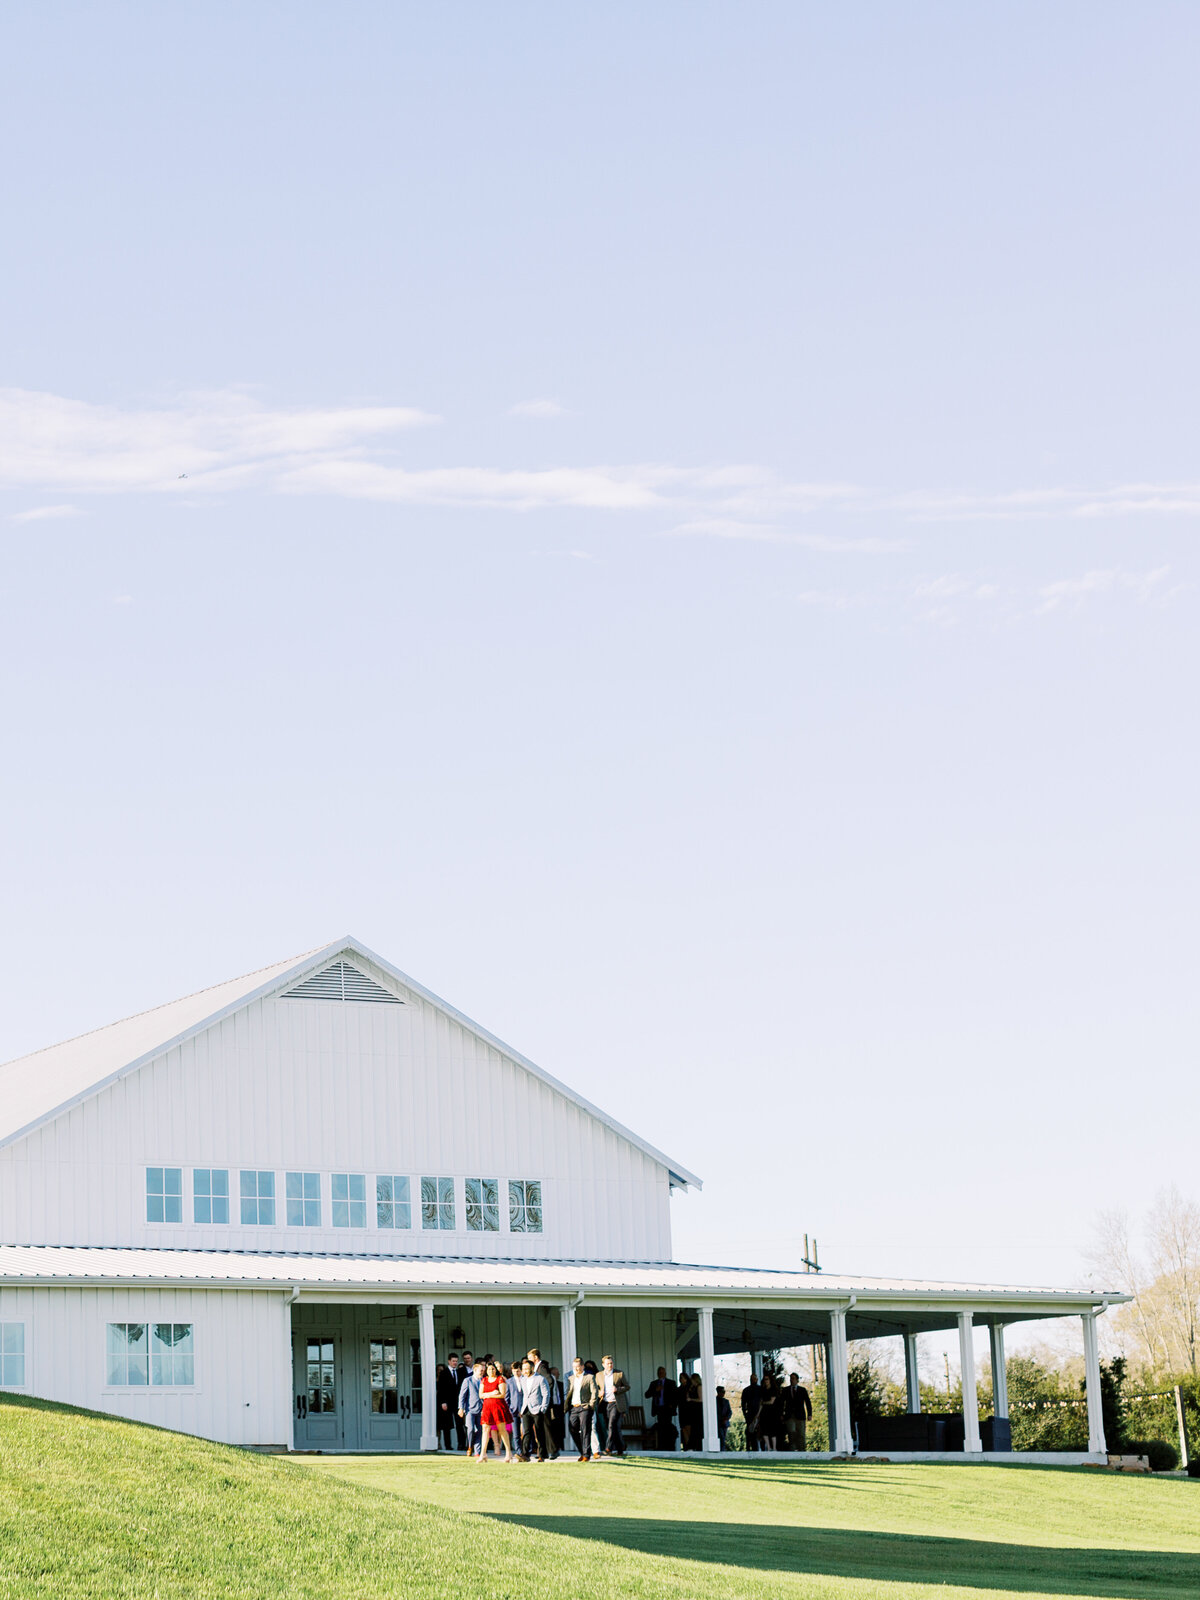 the-farmhouse-wedding-houston-texas-wedding-photographer-mackenzie-reiter-photography-50